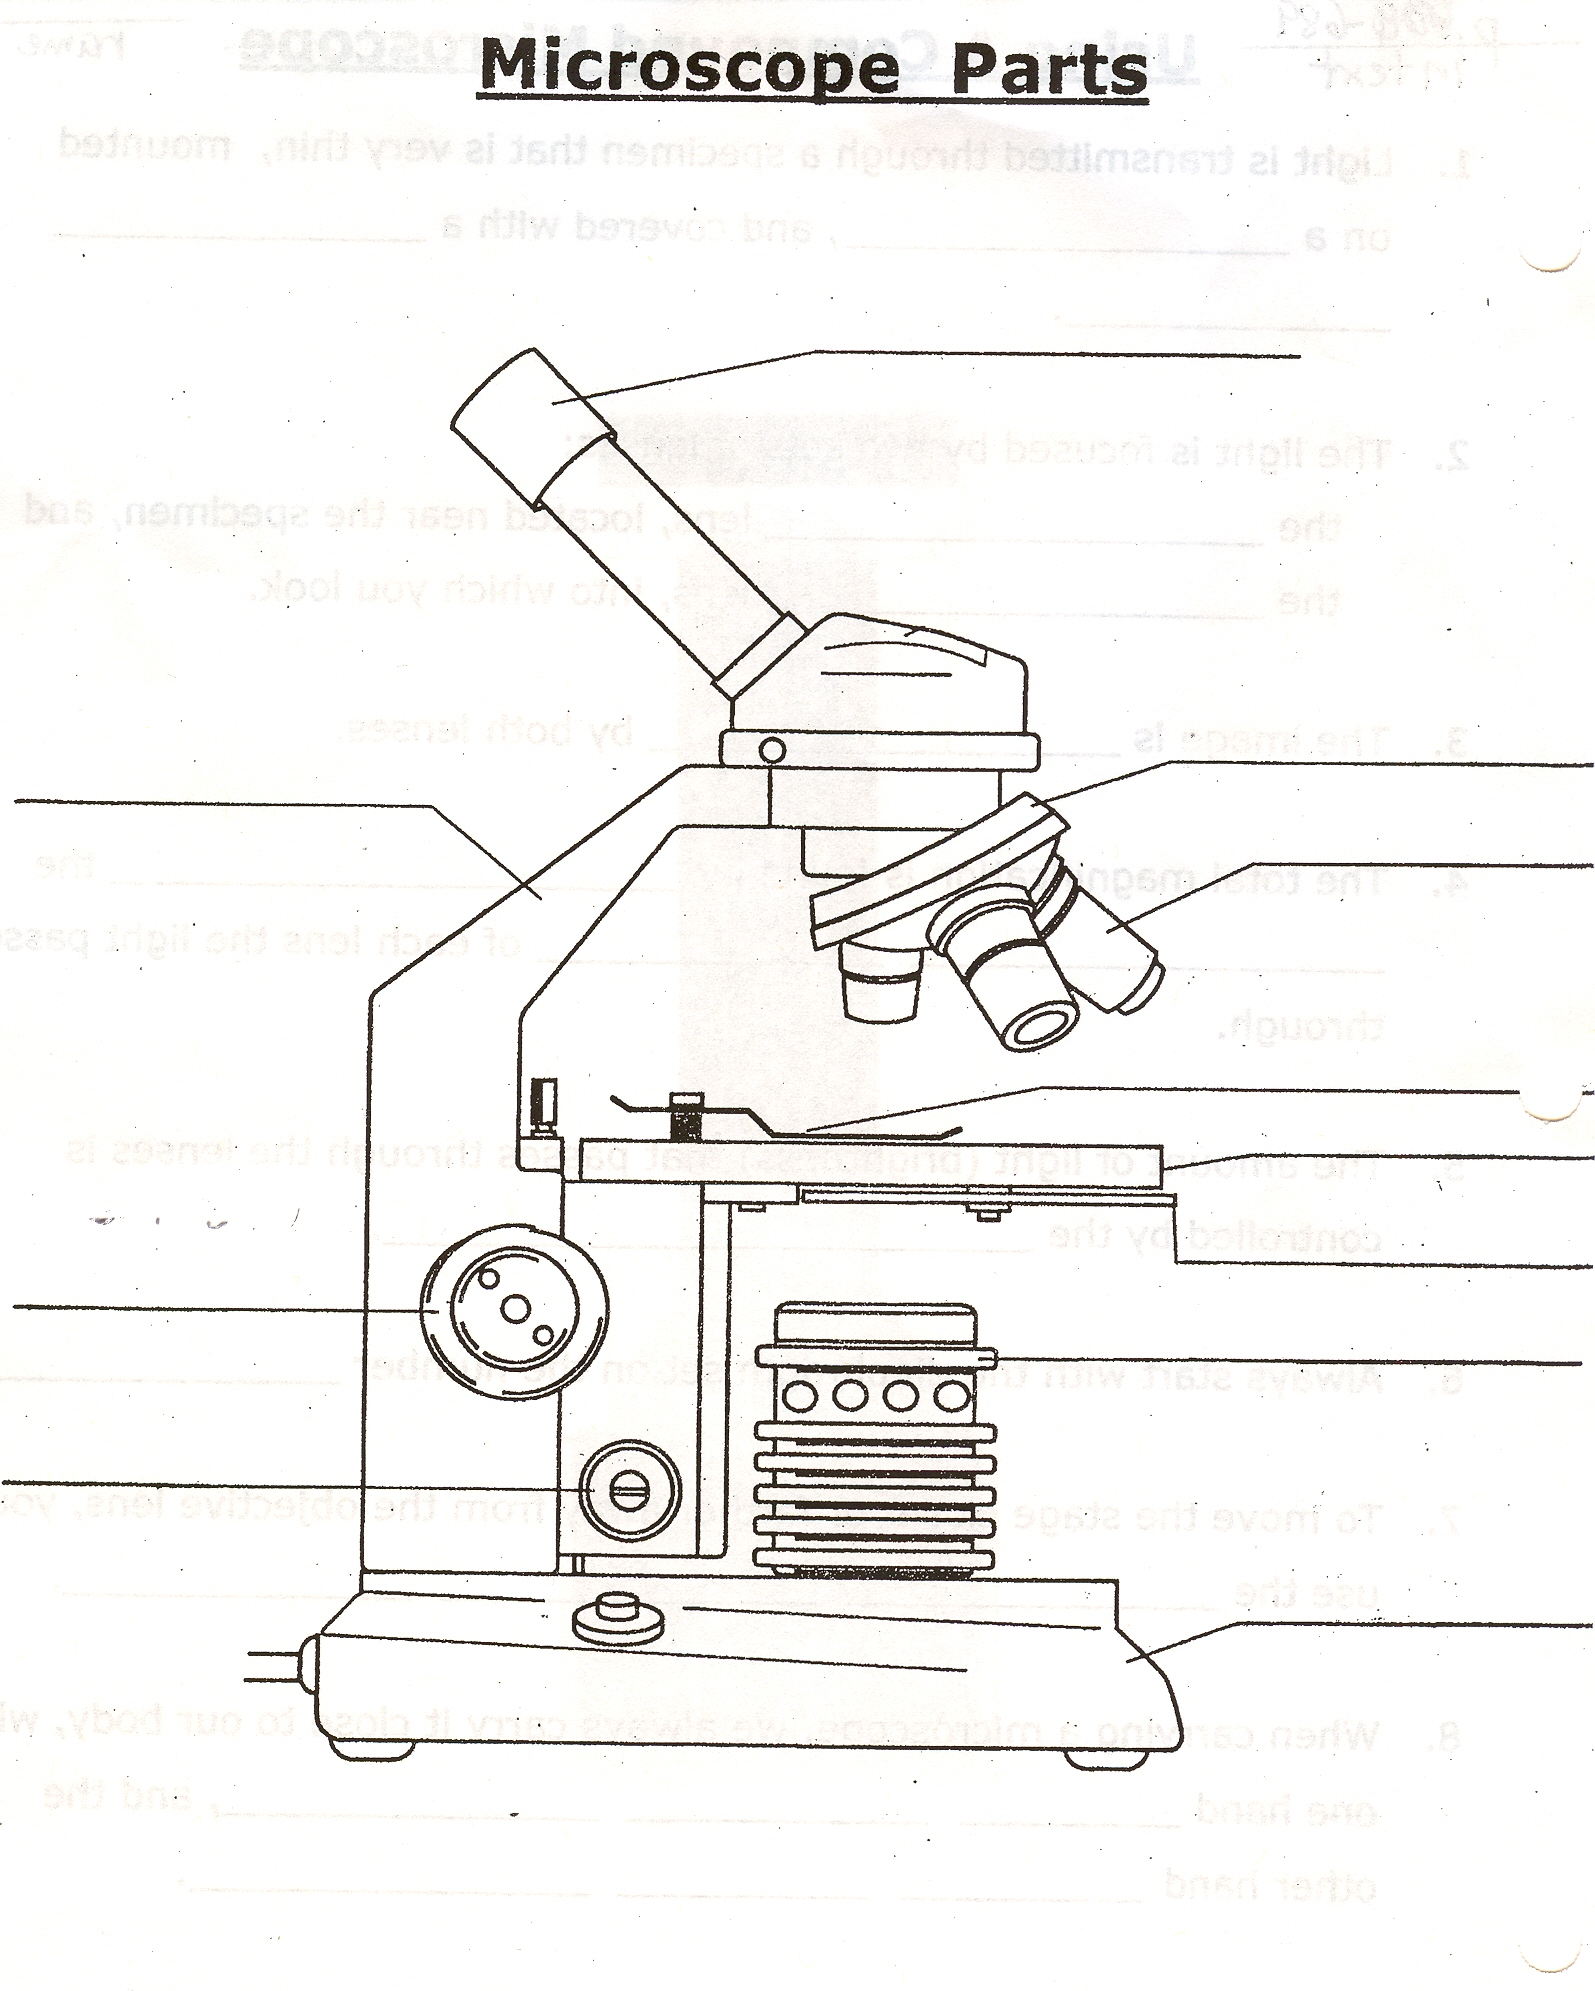 Uncategorized Microscope Labeling Worksheet Waytoohuman